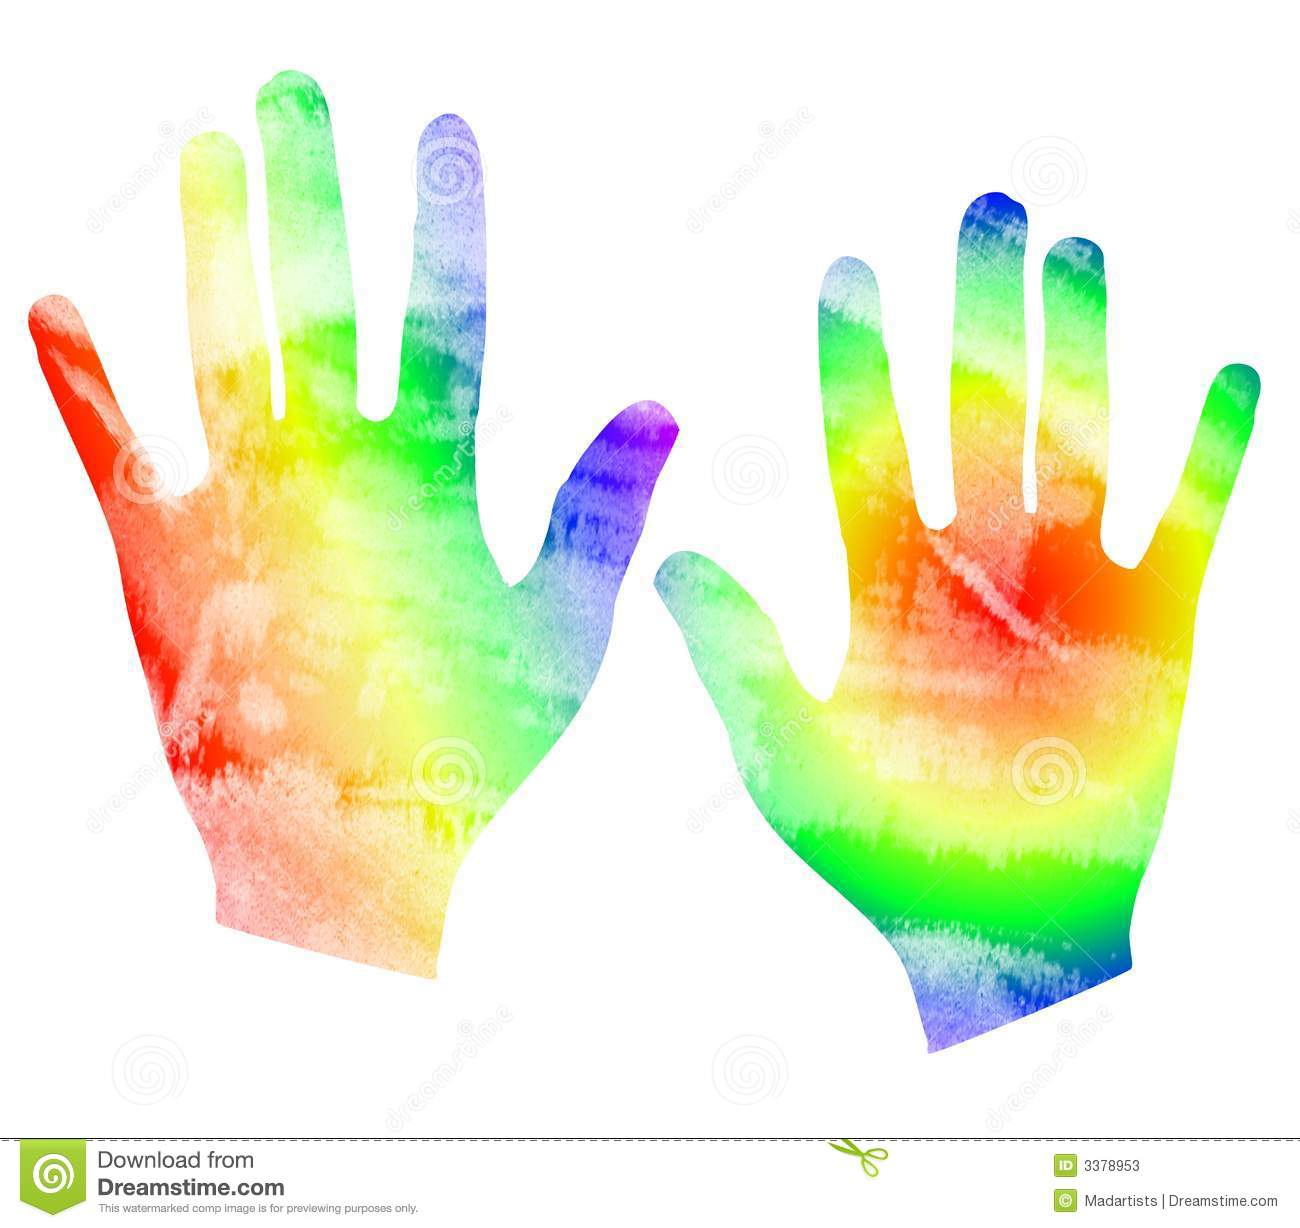 Clip Art Illustration Of A Set Of Hands In Tye Dyed Watercolor Style